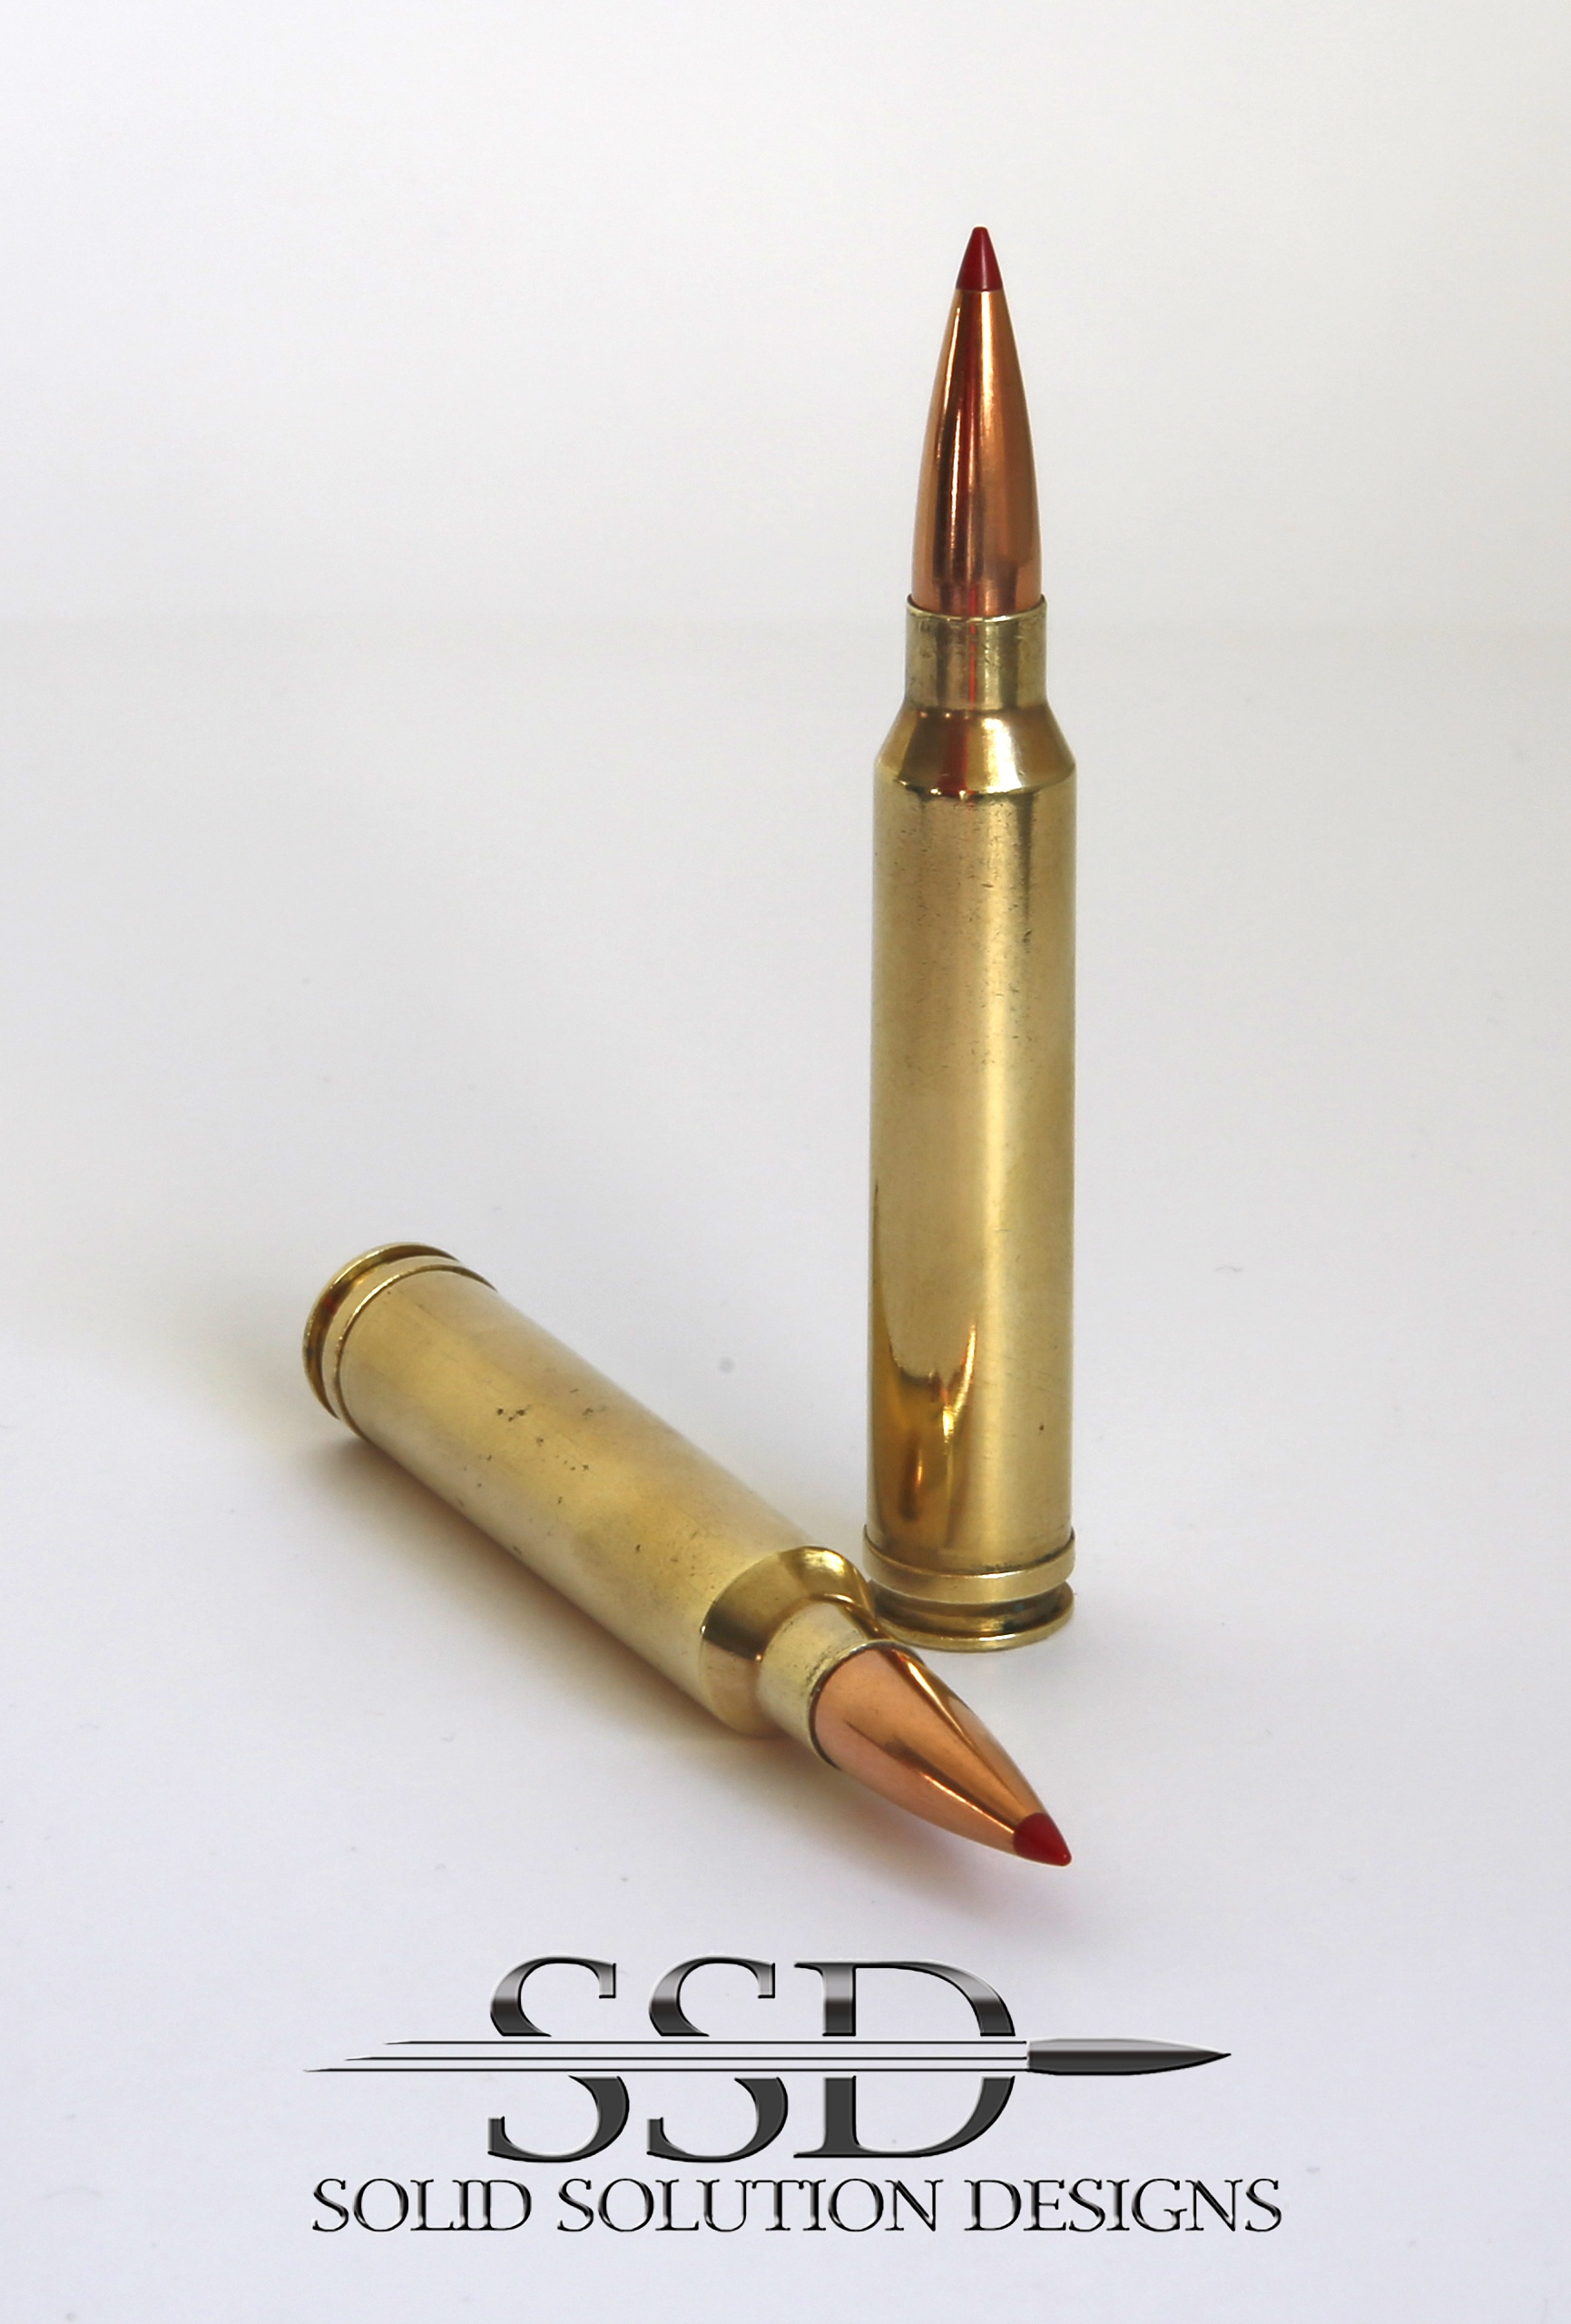 300 WinMag with 208 grain Hornady ELD Match (SSD Custom Ammo #4)